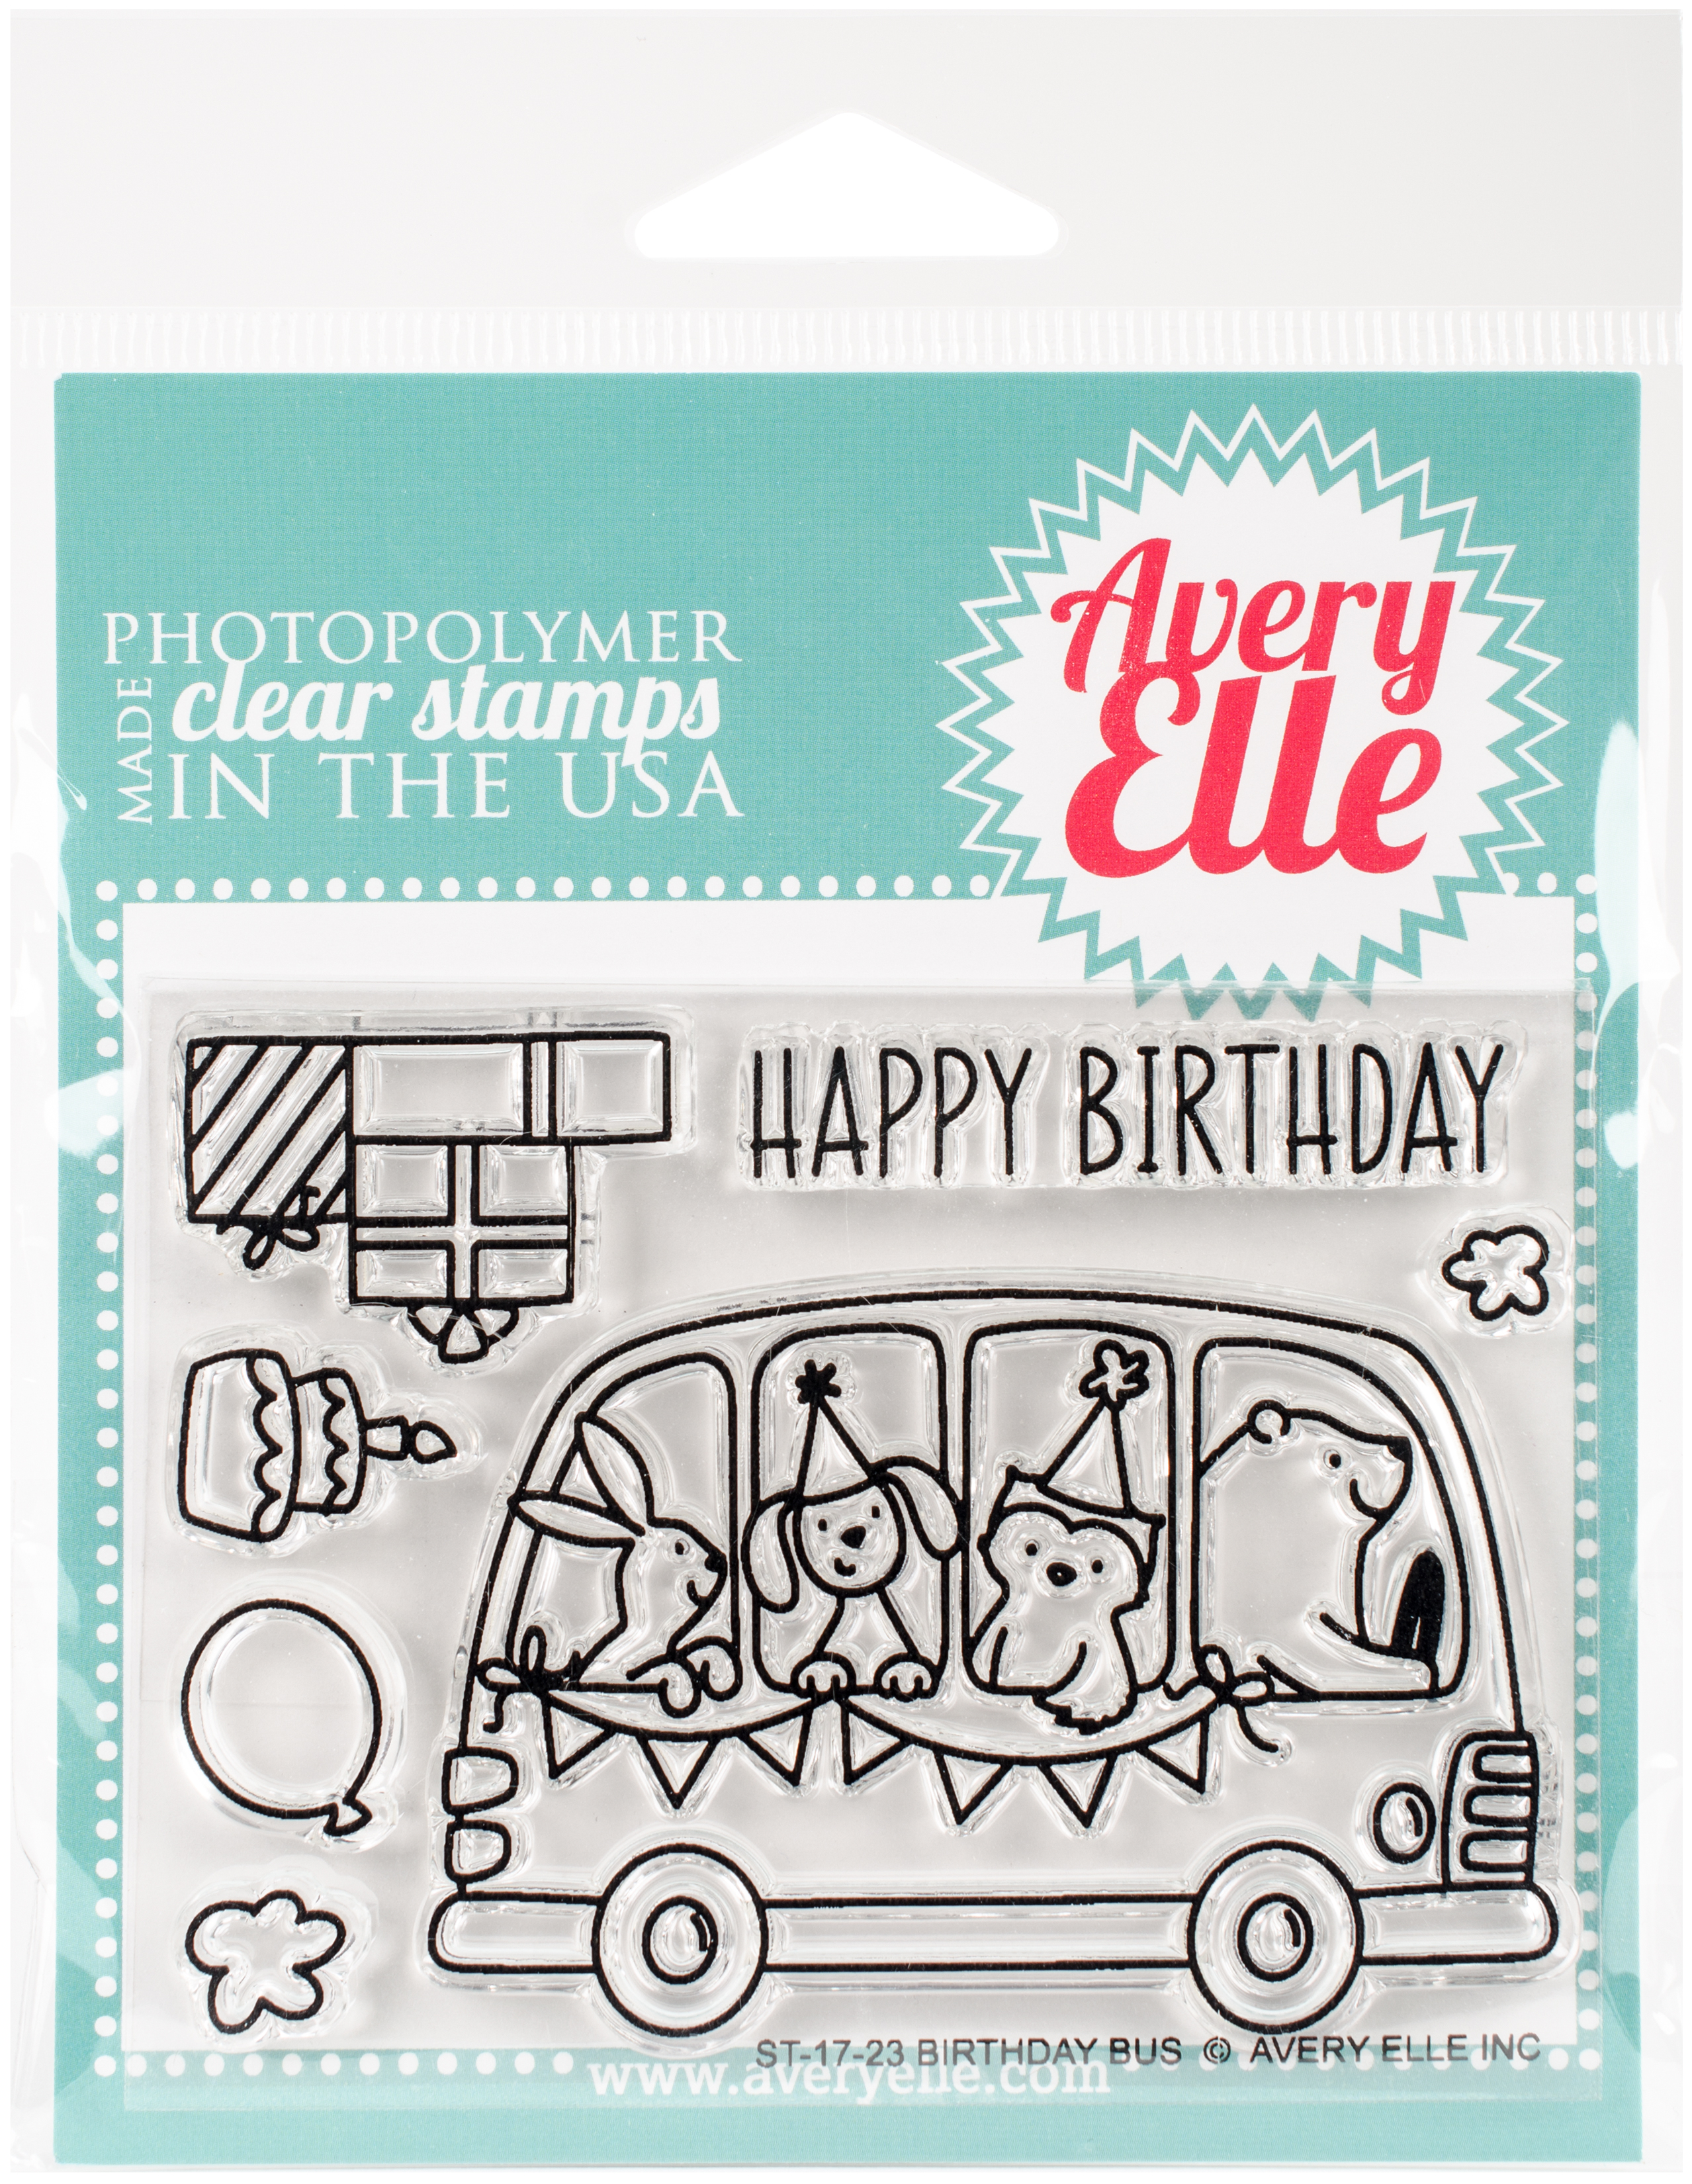 Avery Elle Clear Stamp Birthday Bus AE1723